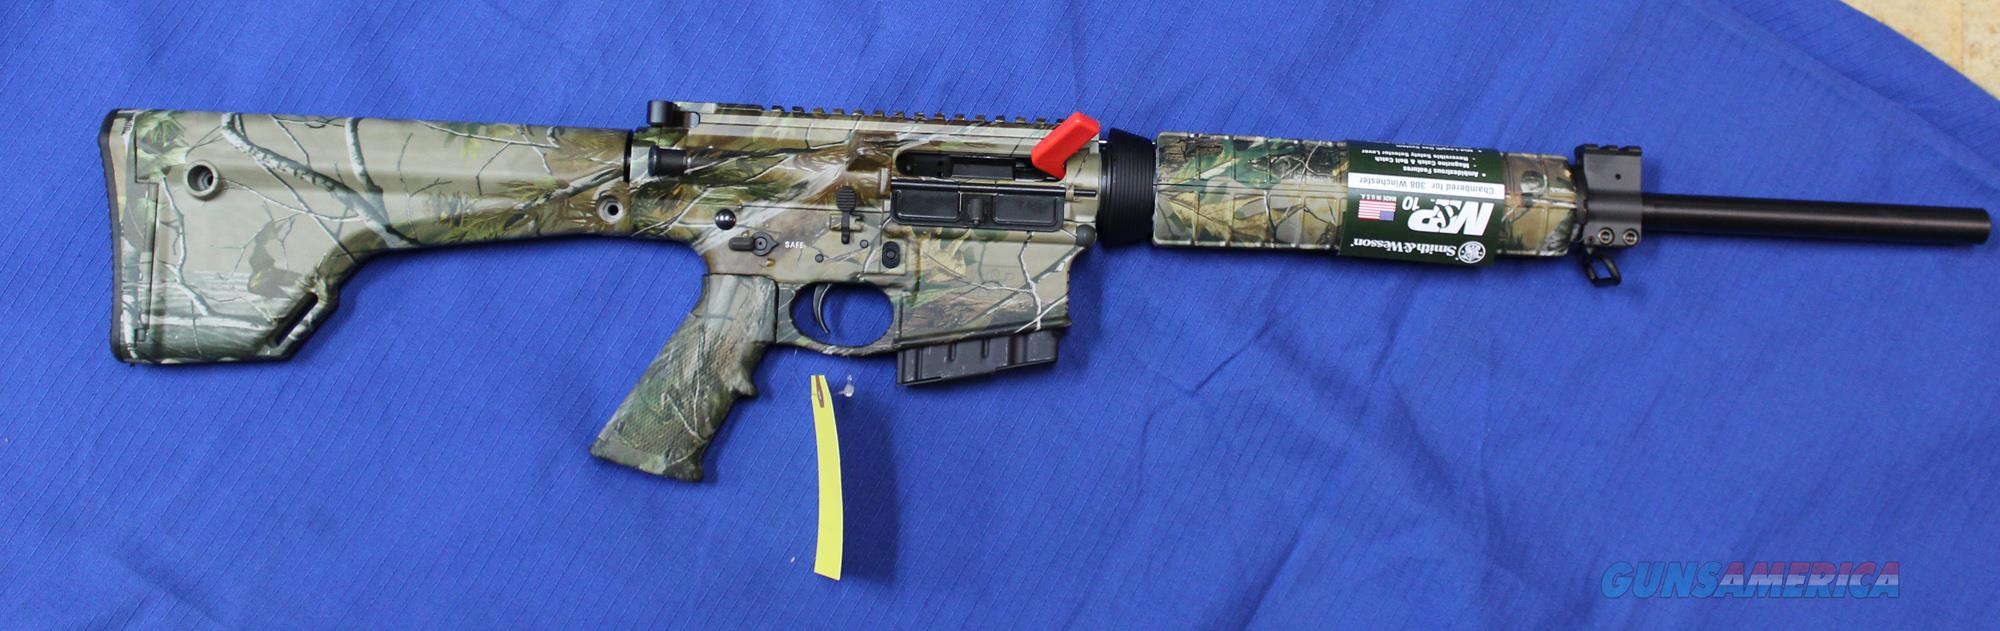 SMITH & WESSON M&P 10 CAMO 308 WIN / 7.62 WITH 5 ROUND MAGAZINE   Guns > Rifles > Smith & Wesson Rifles > M&P